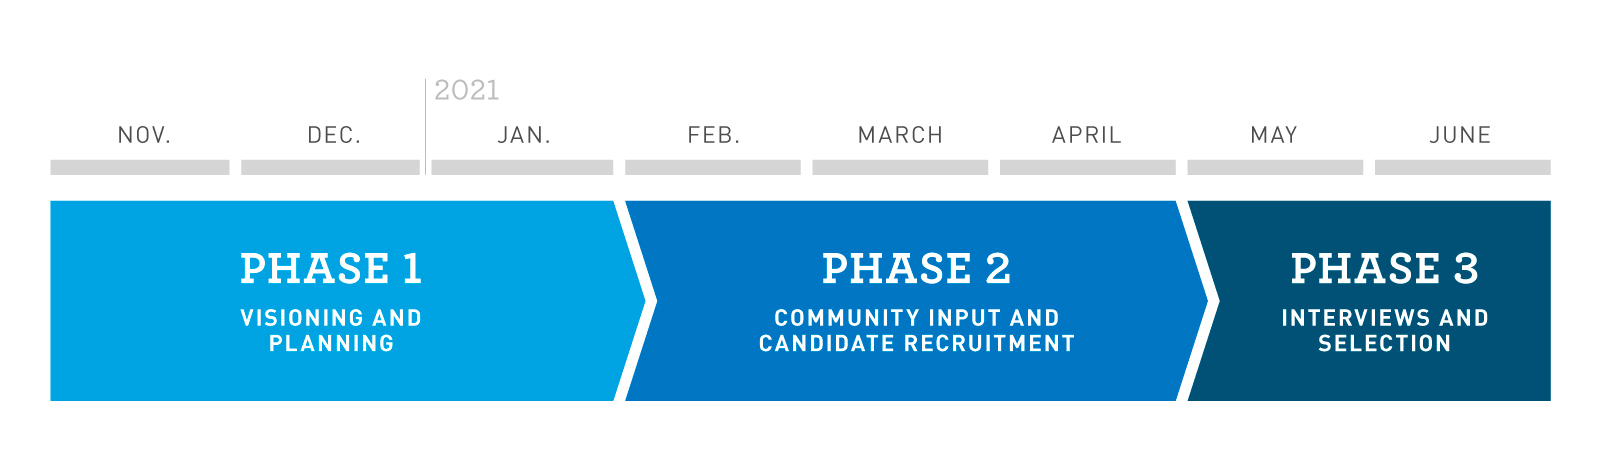 Three-part graphic showing the phases of the superintendent search process. Phase 1: Visioning and Planning. Phase 2: Community Input and Candidate Recruitment. Phase 3: Interviews and Selection.